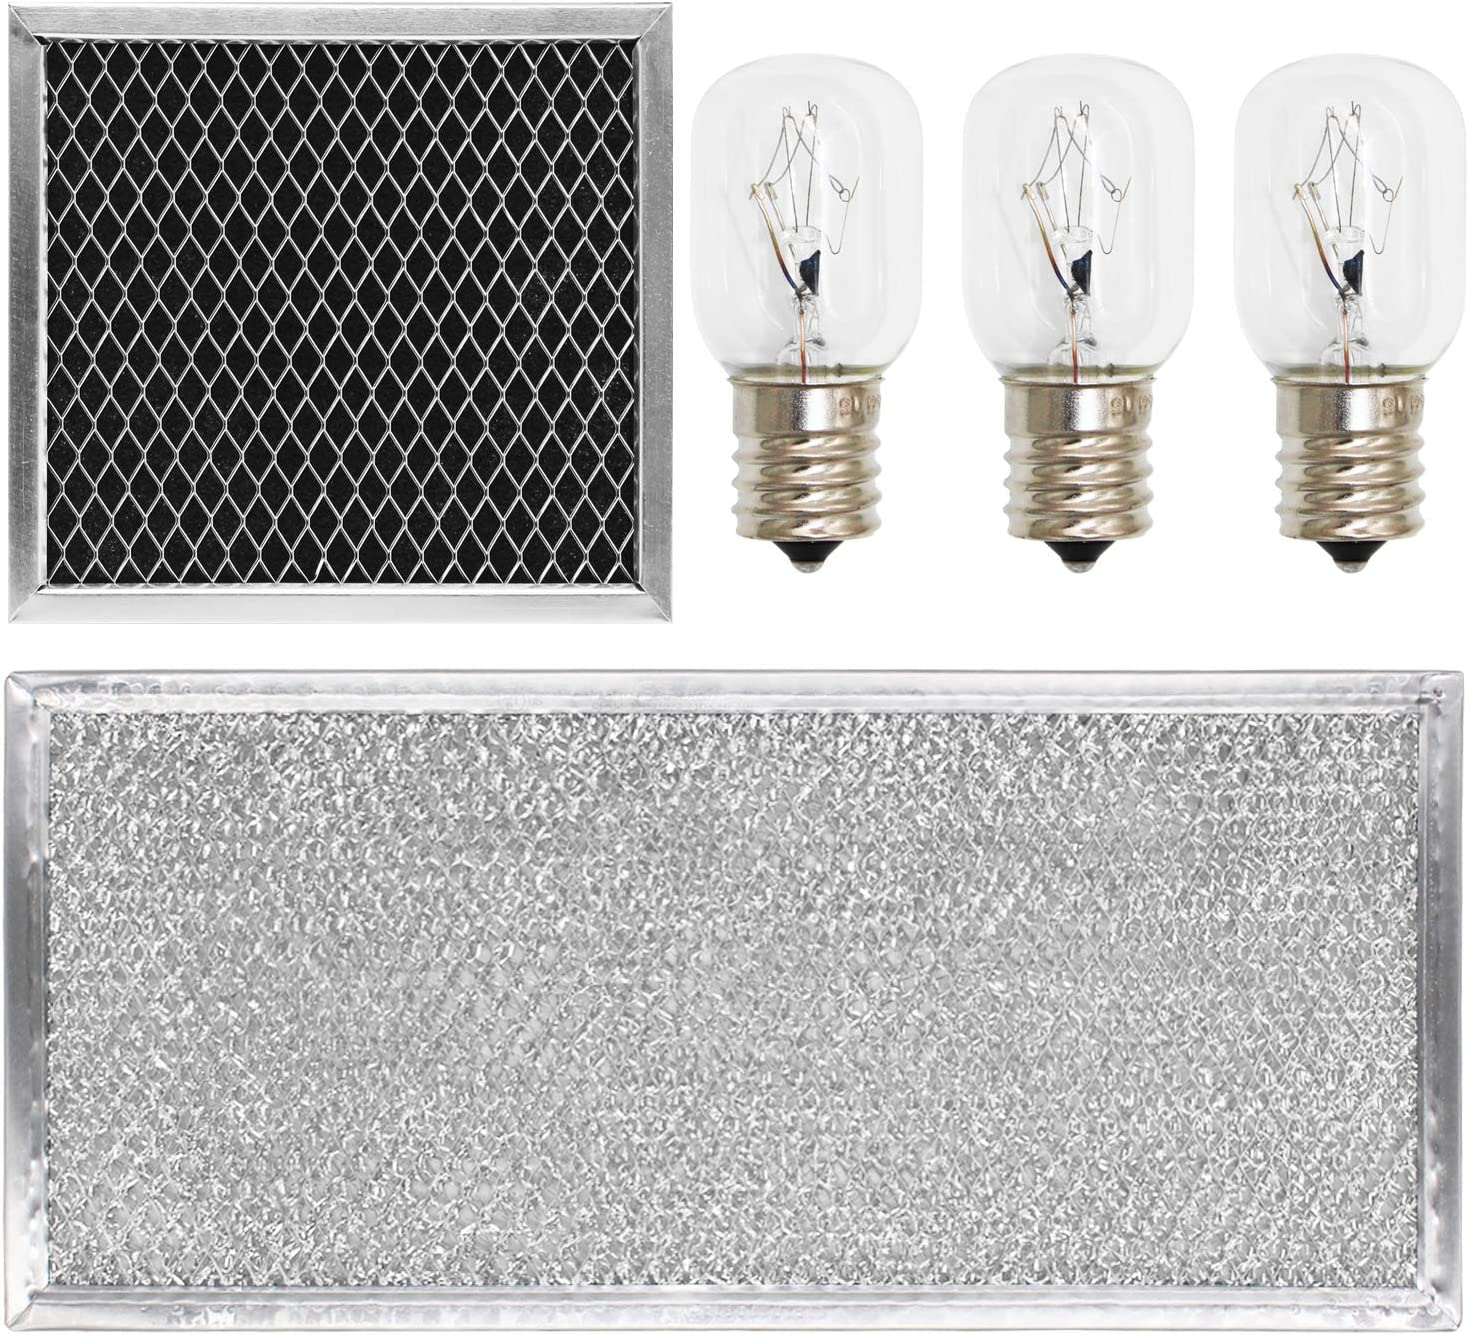 YEECHUN 5 Pcs 8206230A Charcoal Filter & W10208631A Grease Filter & 40w 8206232A Light Bulb Replacement Part for Whirlpool Microwave